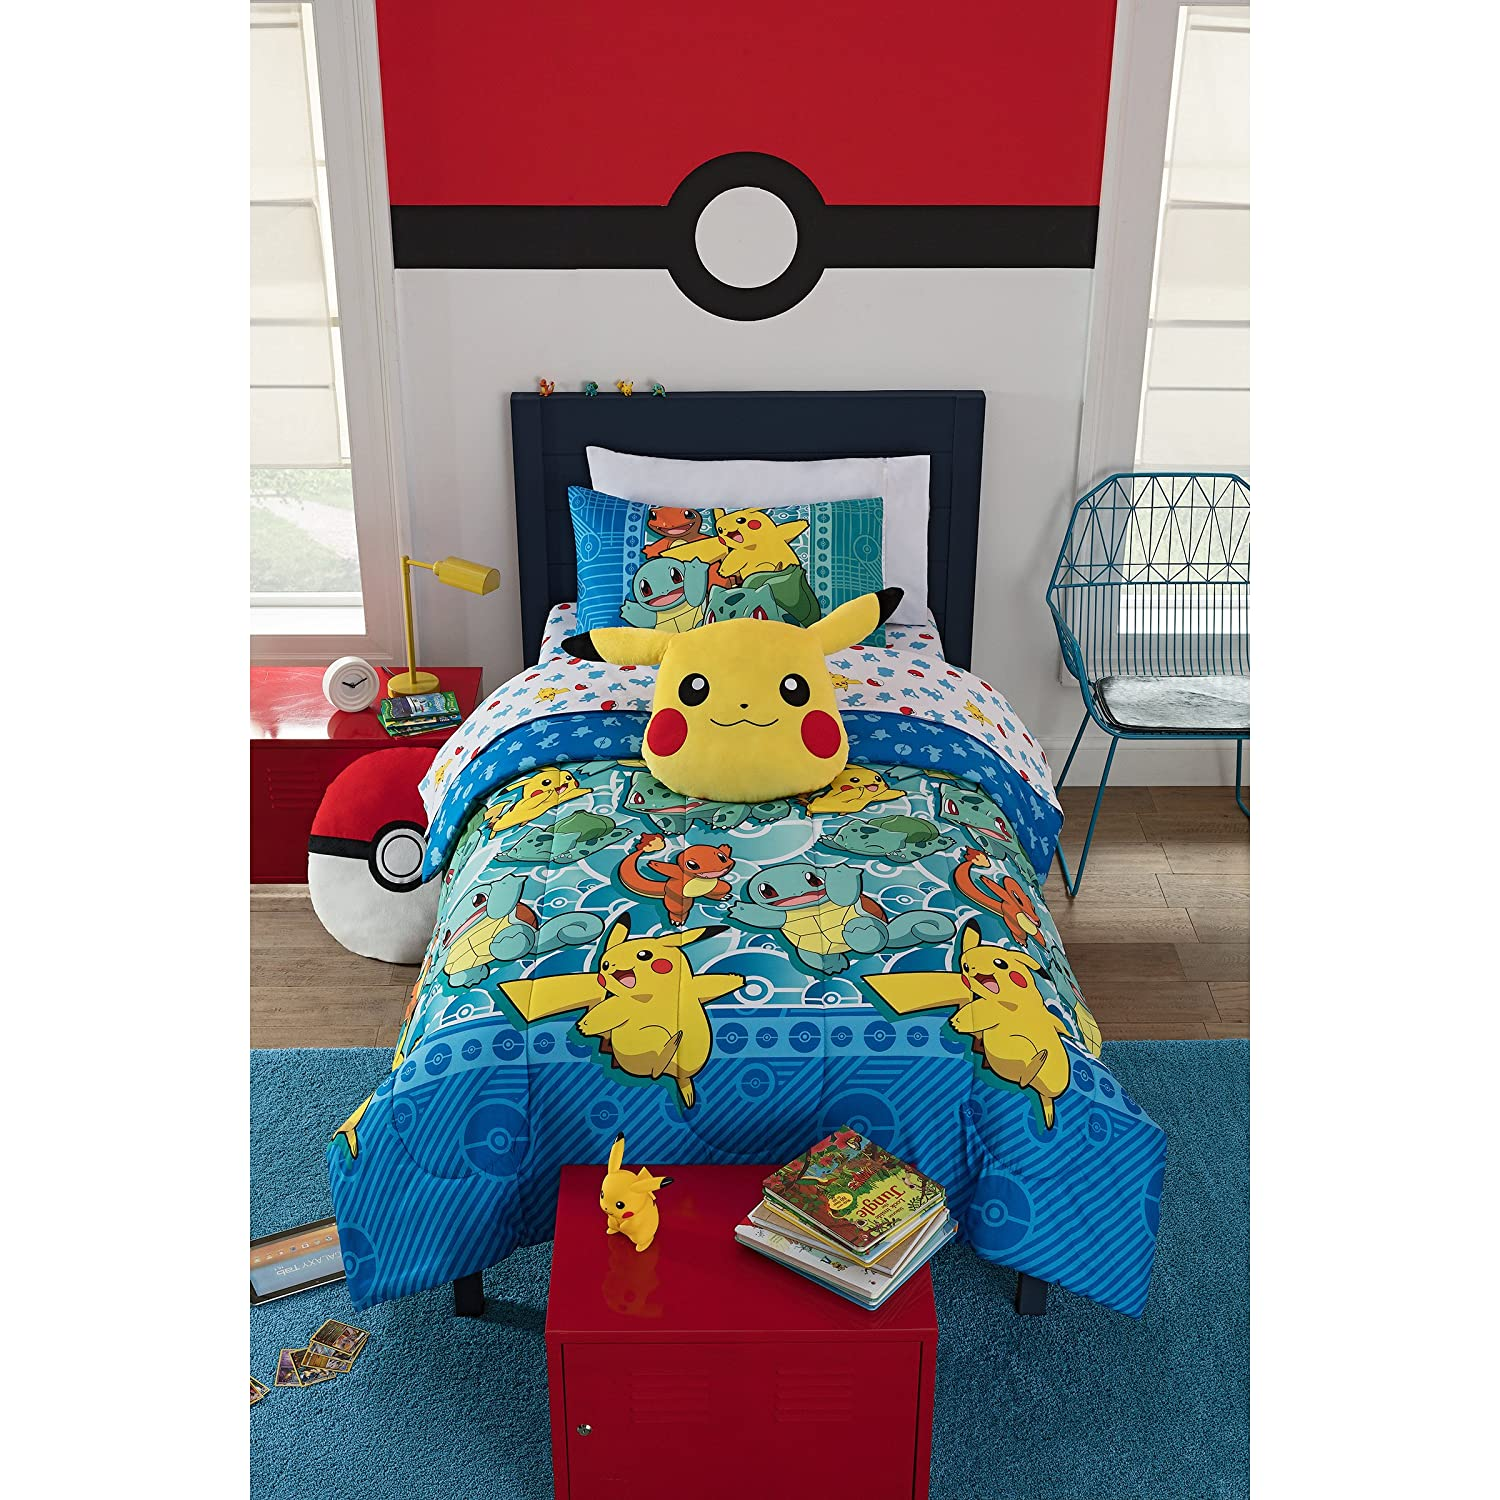 Pokémon, First Starters Twin Bed in a Bag Set, 64 x 86, Multi Color Pokémon 64 x 86 The Northwest Company 1POK808000002WMT